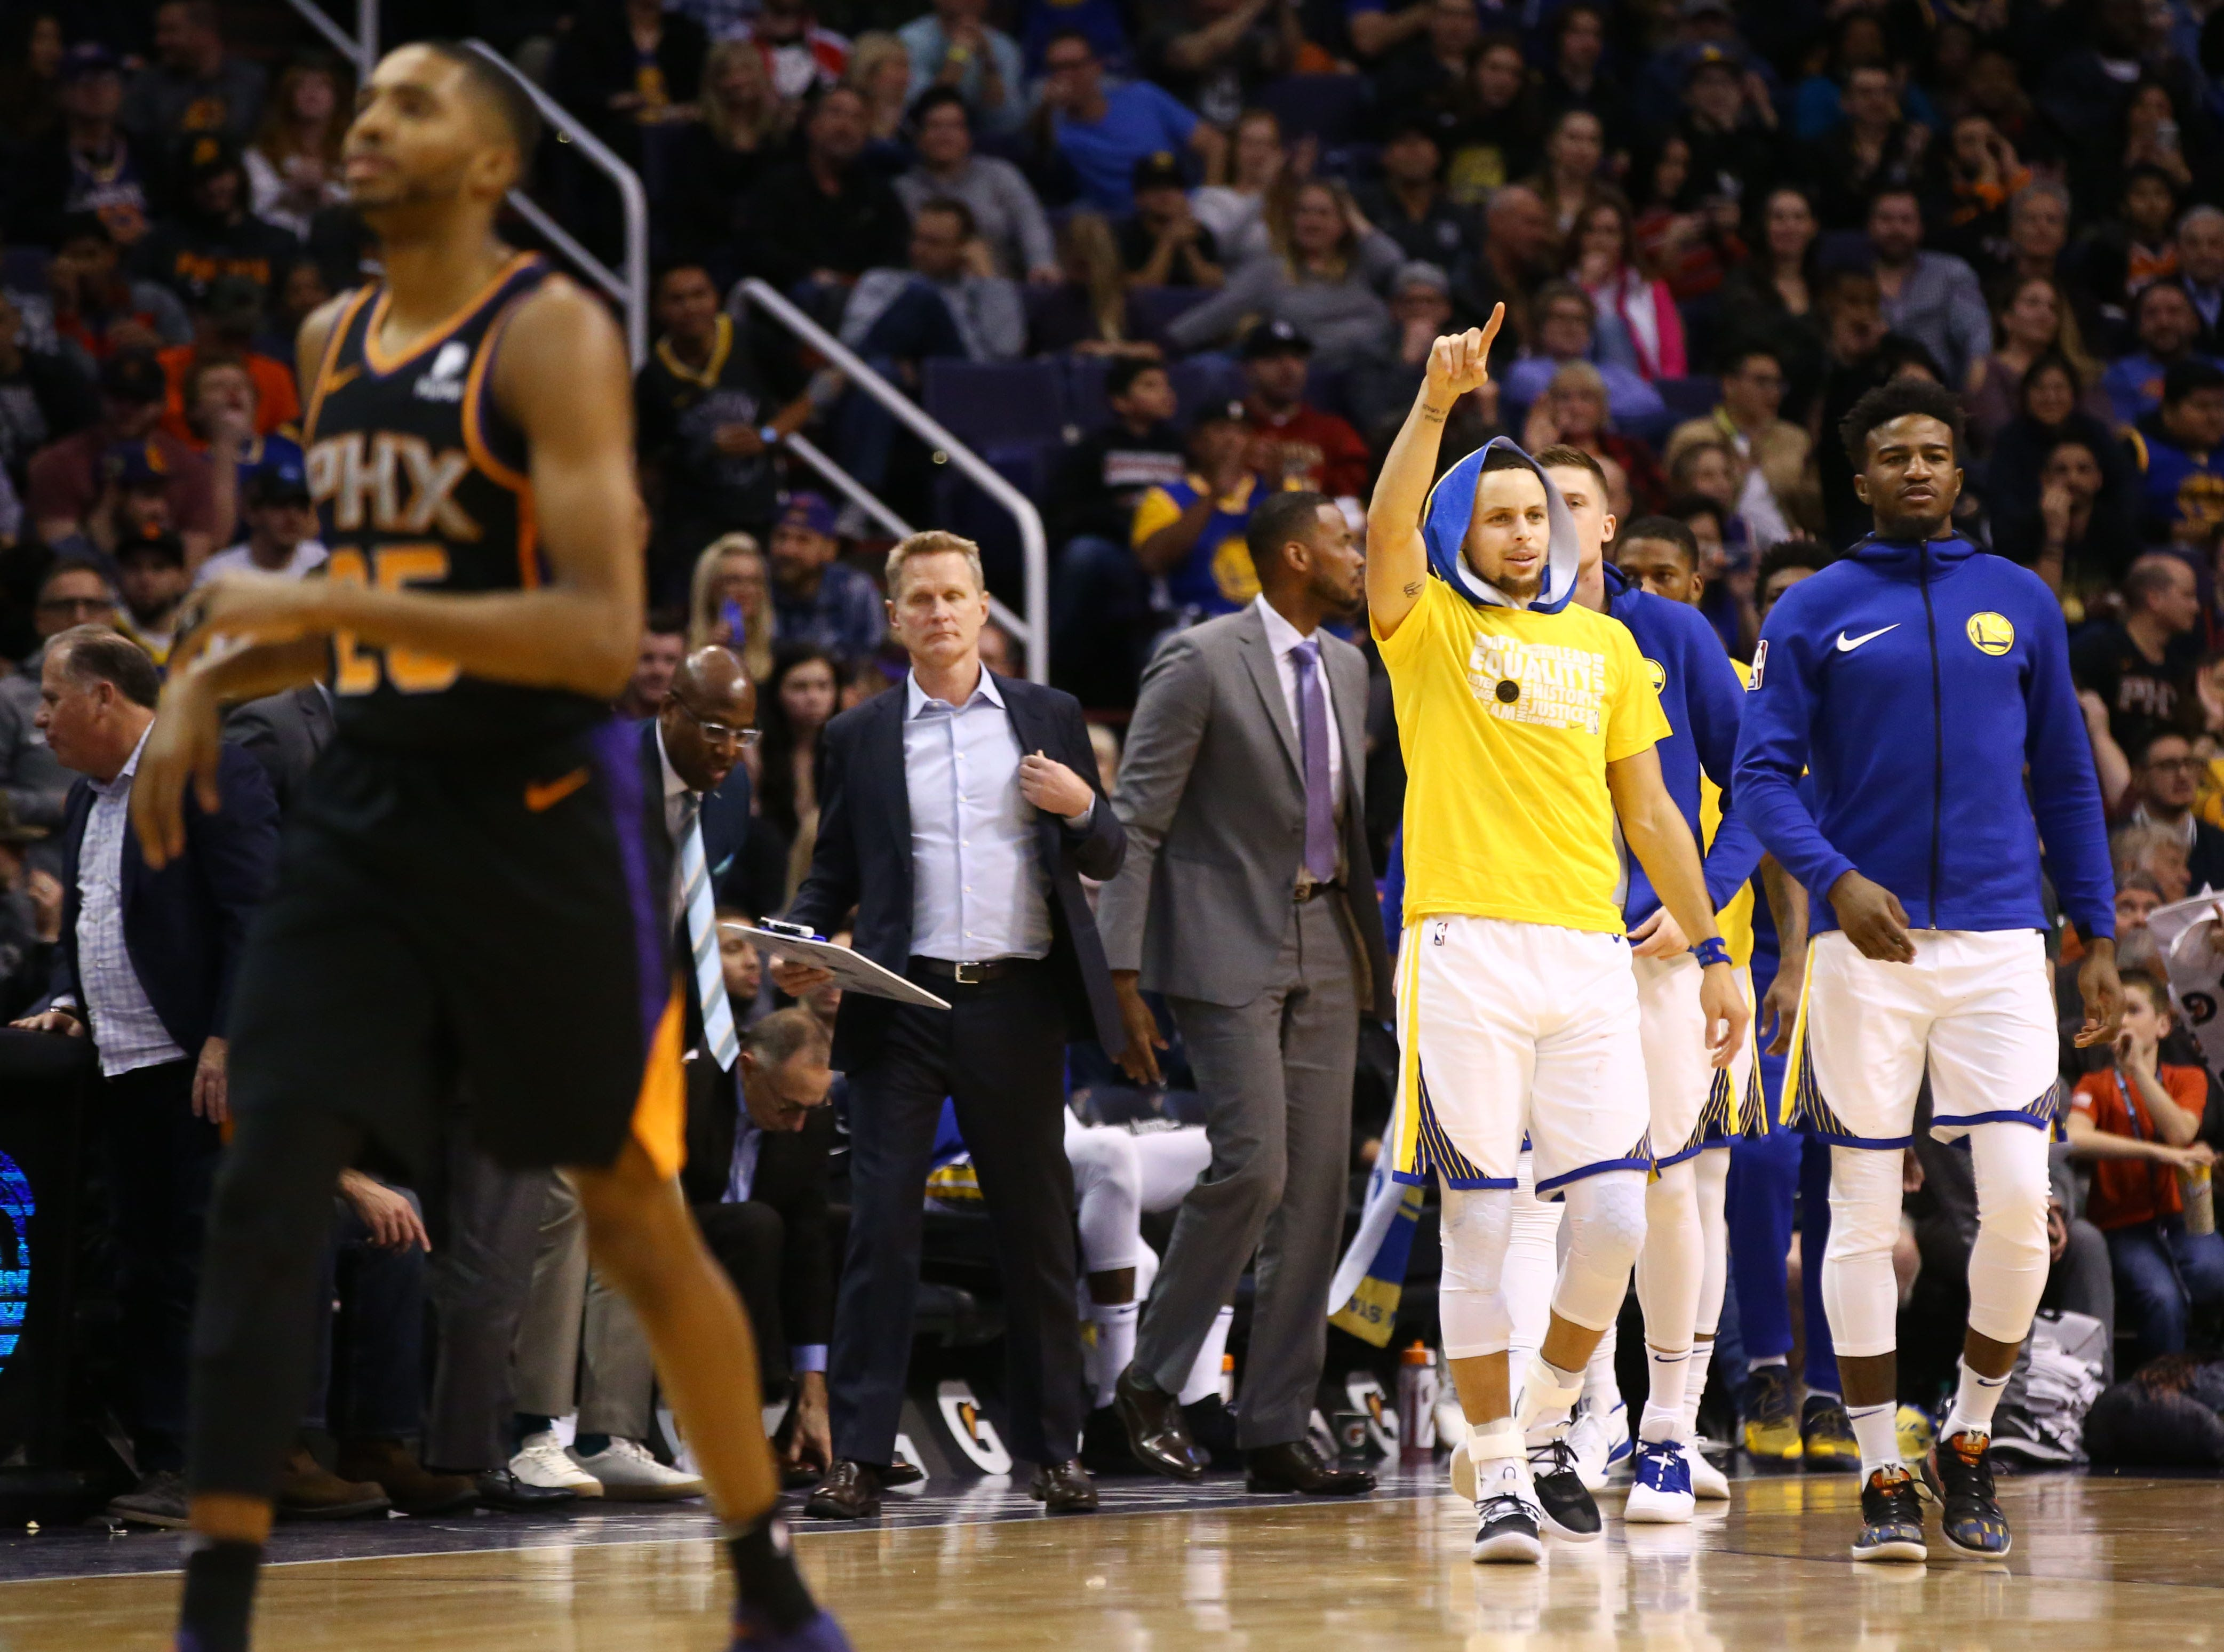 Golden State Warriors guard Stephen Curry react during a timeout against the Phoenix Suns in the second half on Feb. 8 at Talking Stick Resort Arena.